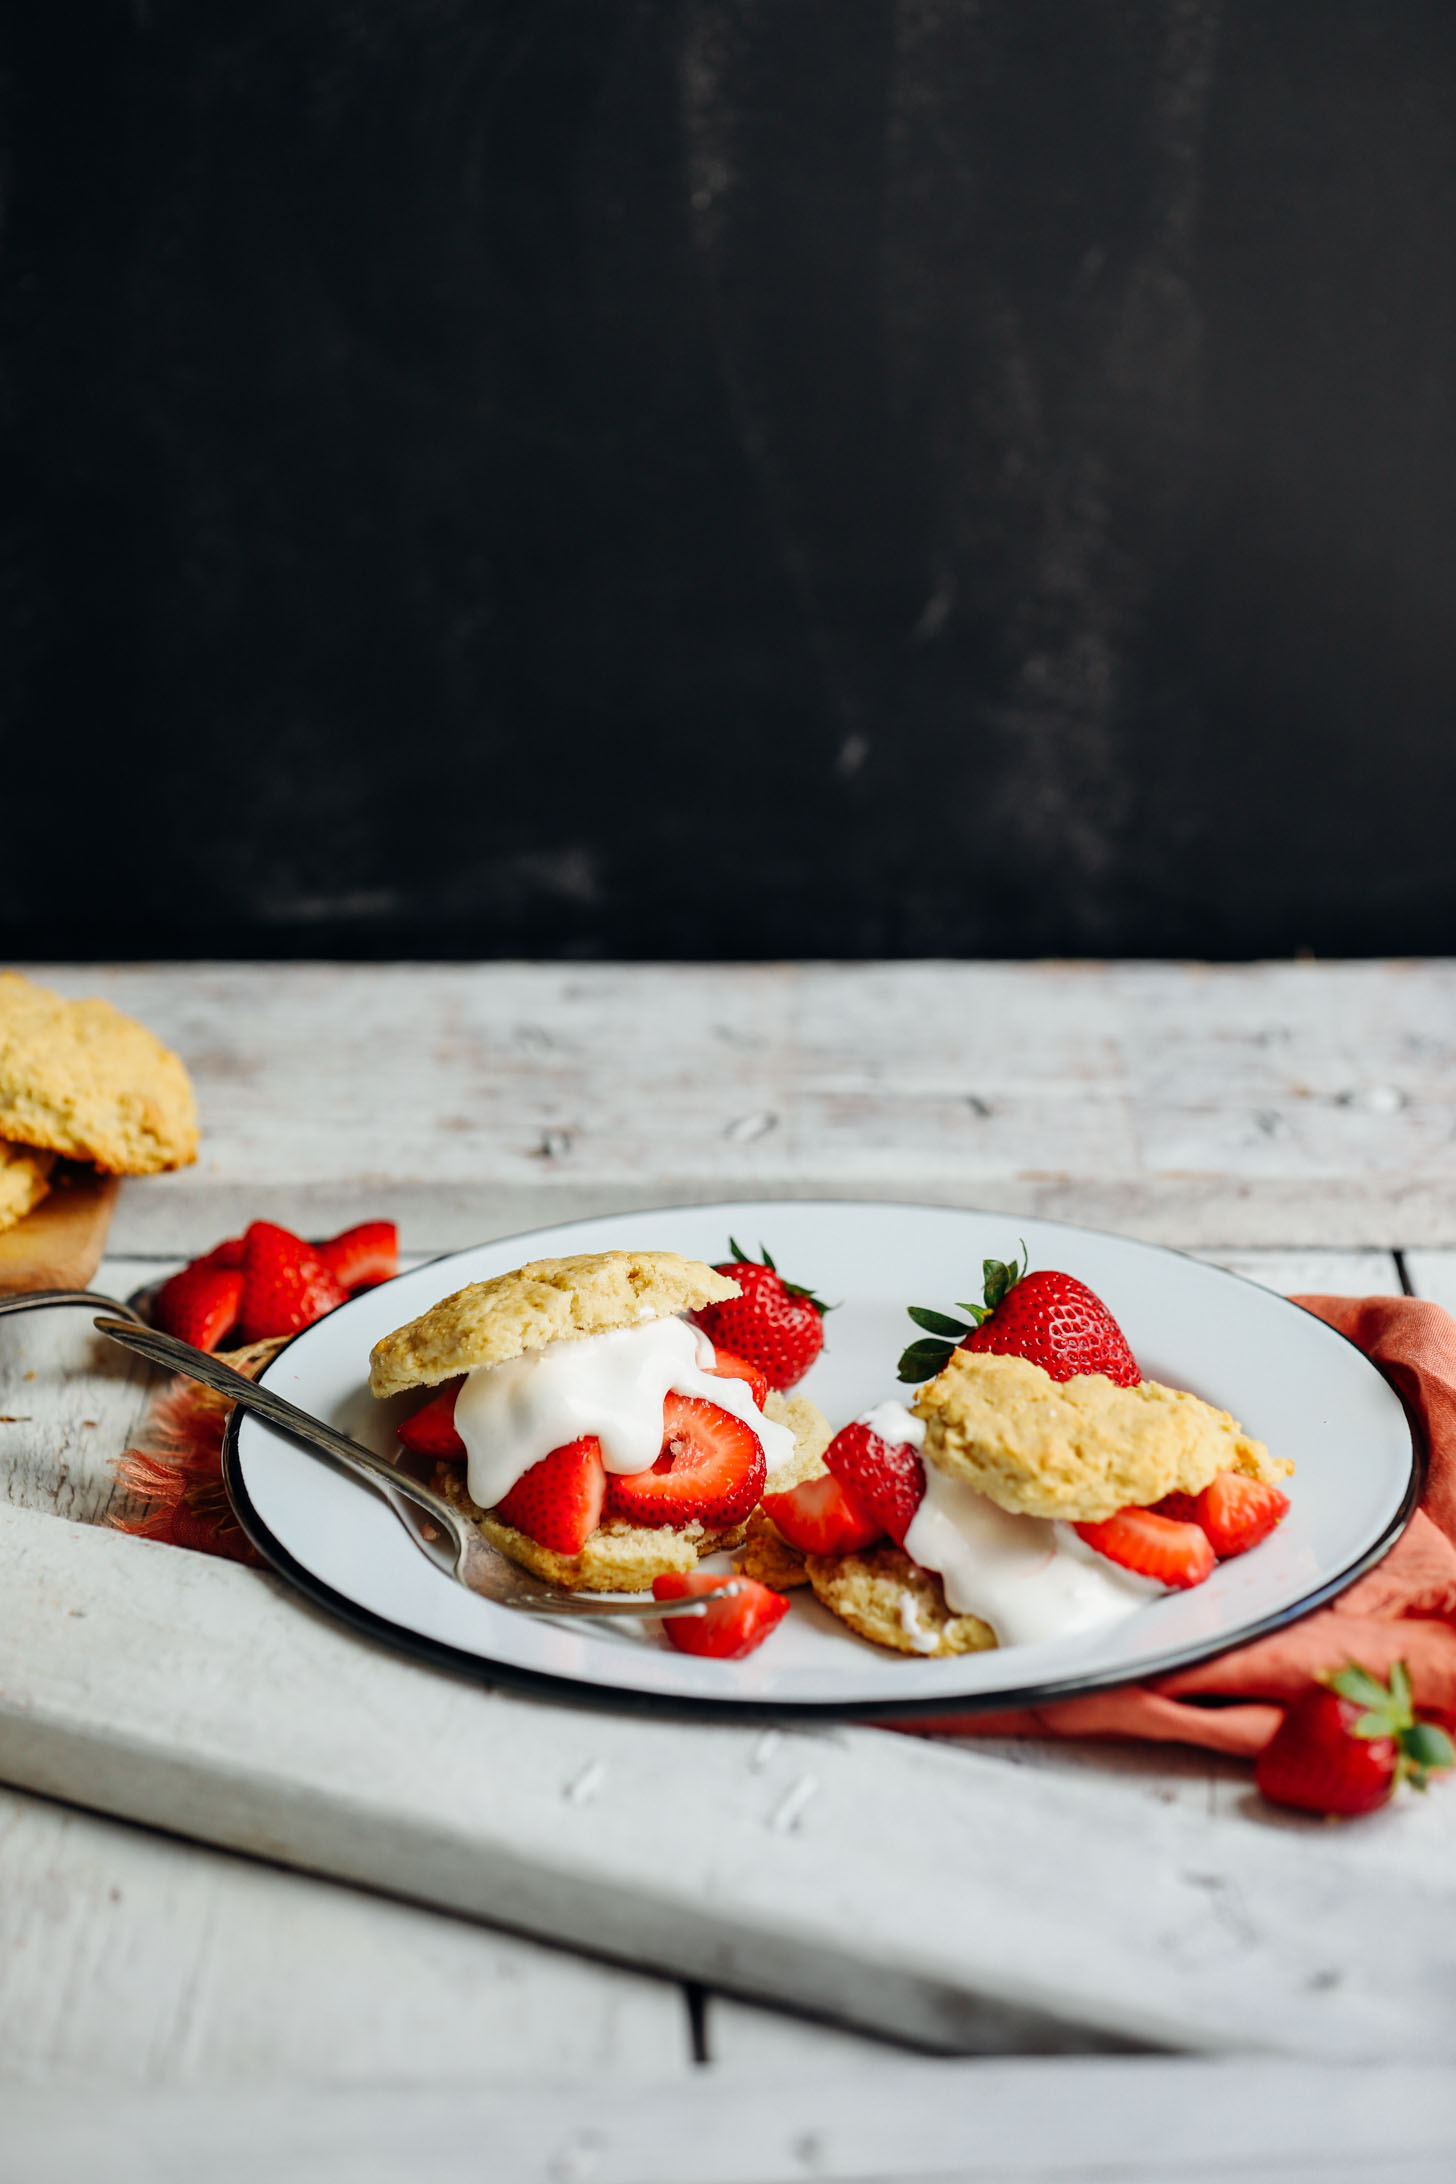 A plate with gluten-free Strawberry Shortcake for the perfect vegan dessert